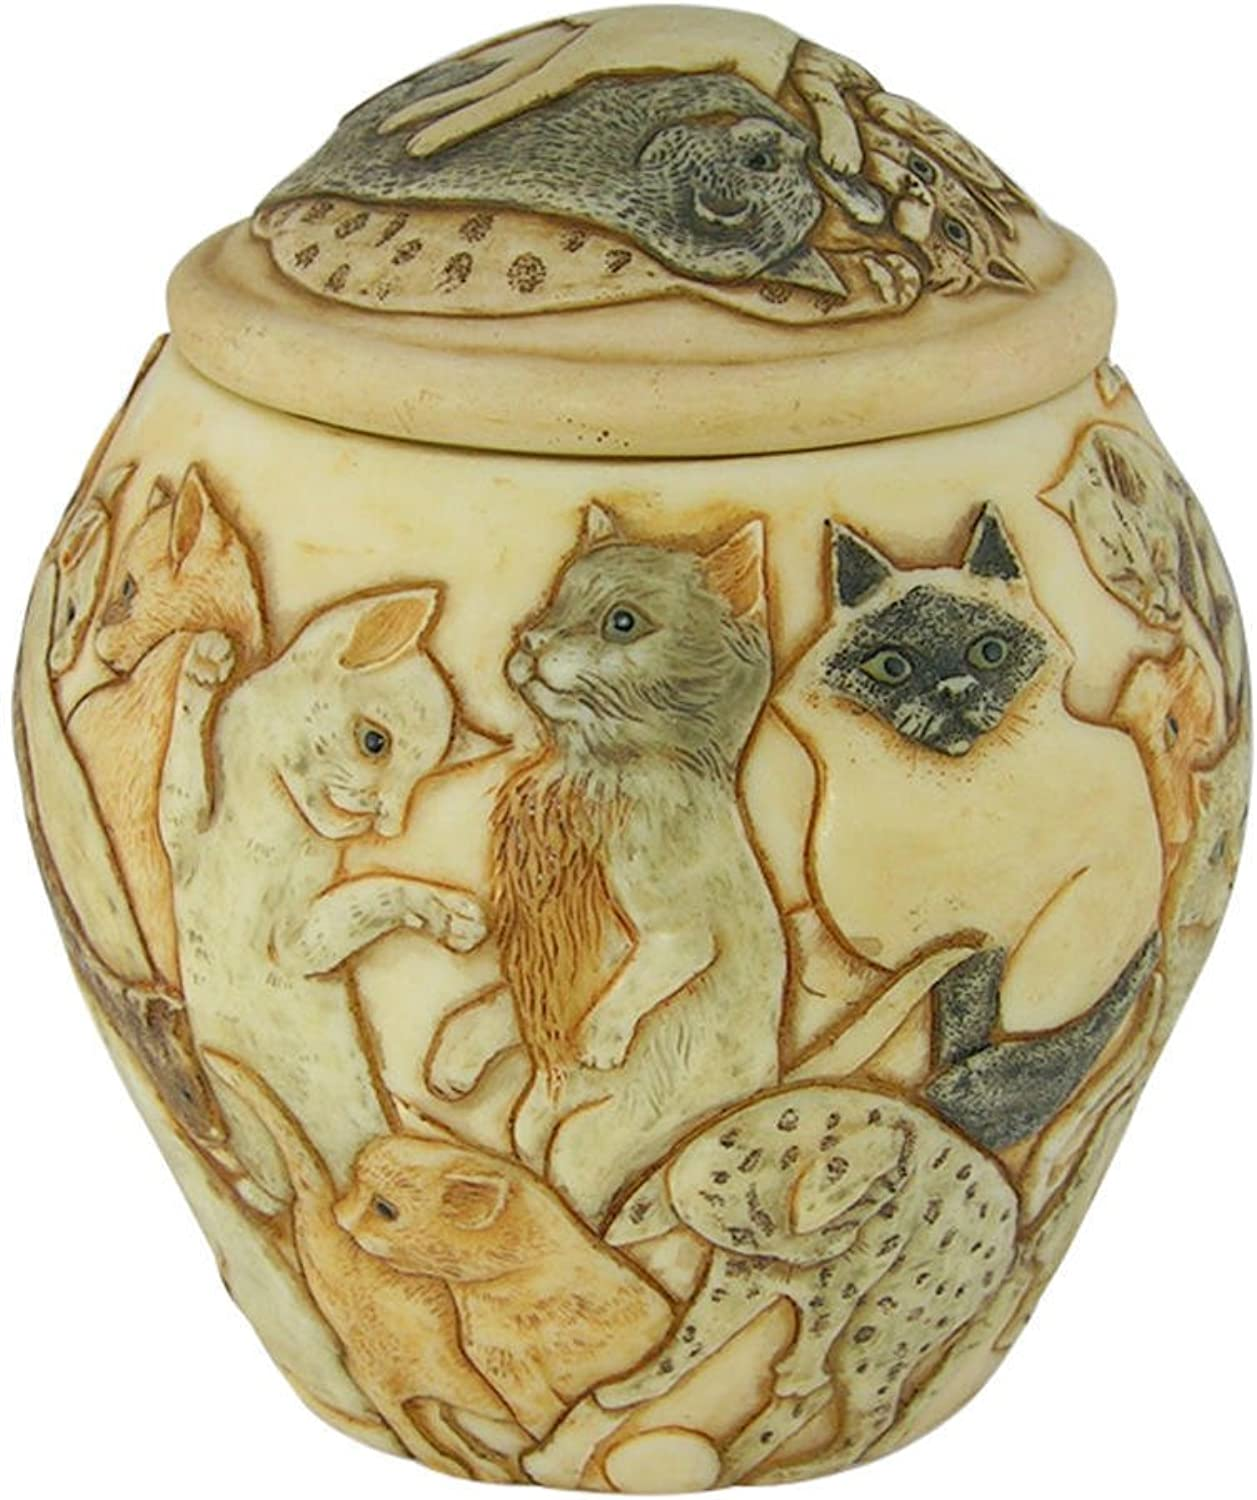 Harmony Ball Cats Galore Cat Cachepot A Beautiful Urn for Pet Ashes